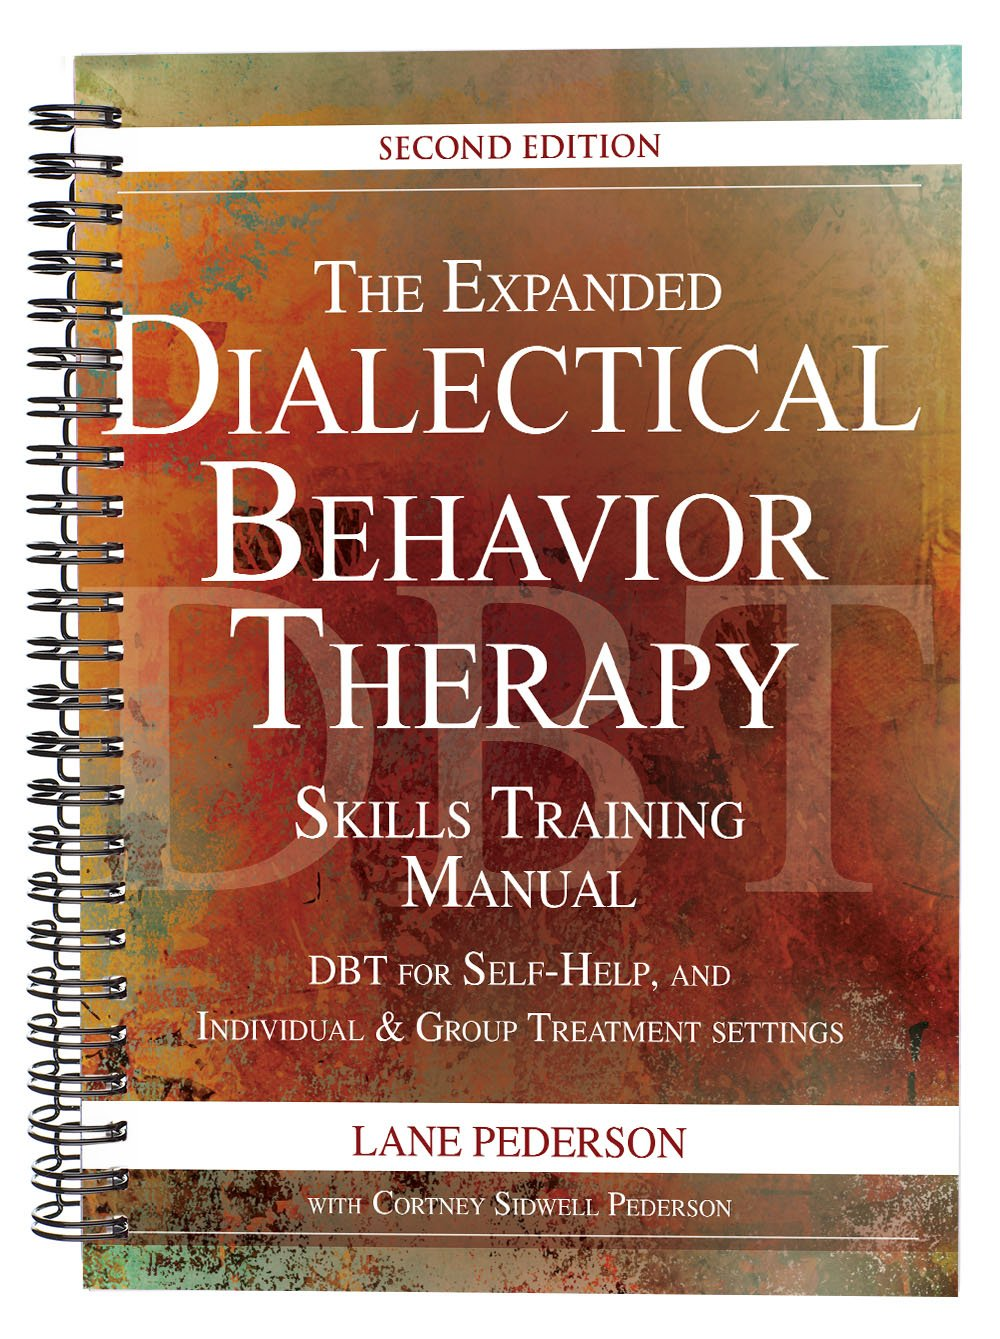 The Expanded Dialectical Behavior Therapy Skills Training Manual: DBT for  Self-Help and Individual & Group Treatment Settings, 2nd Edition: Lane  Pederson, ...